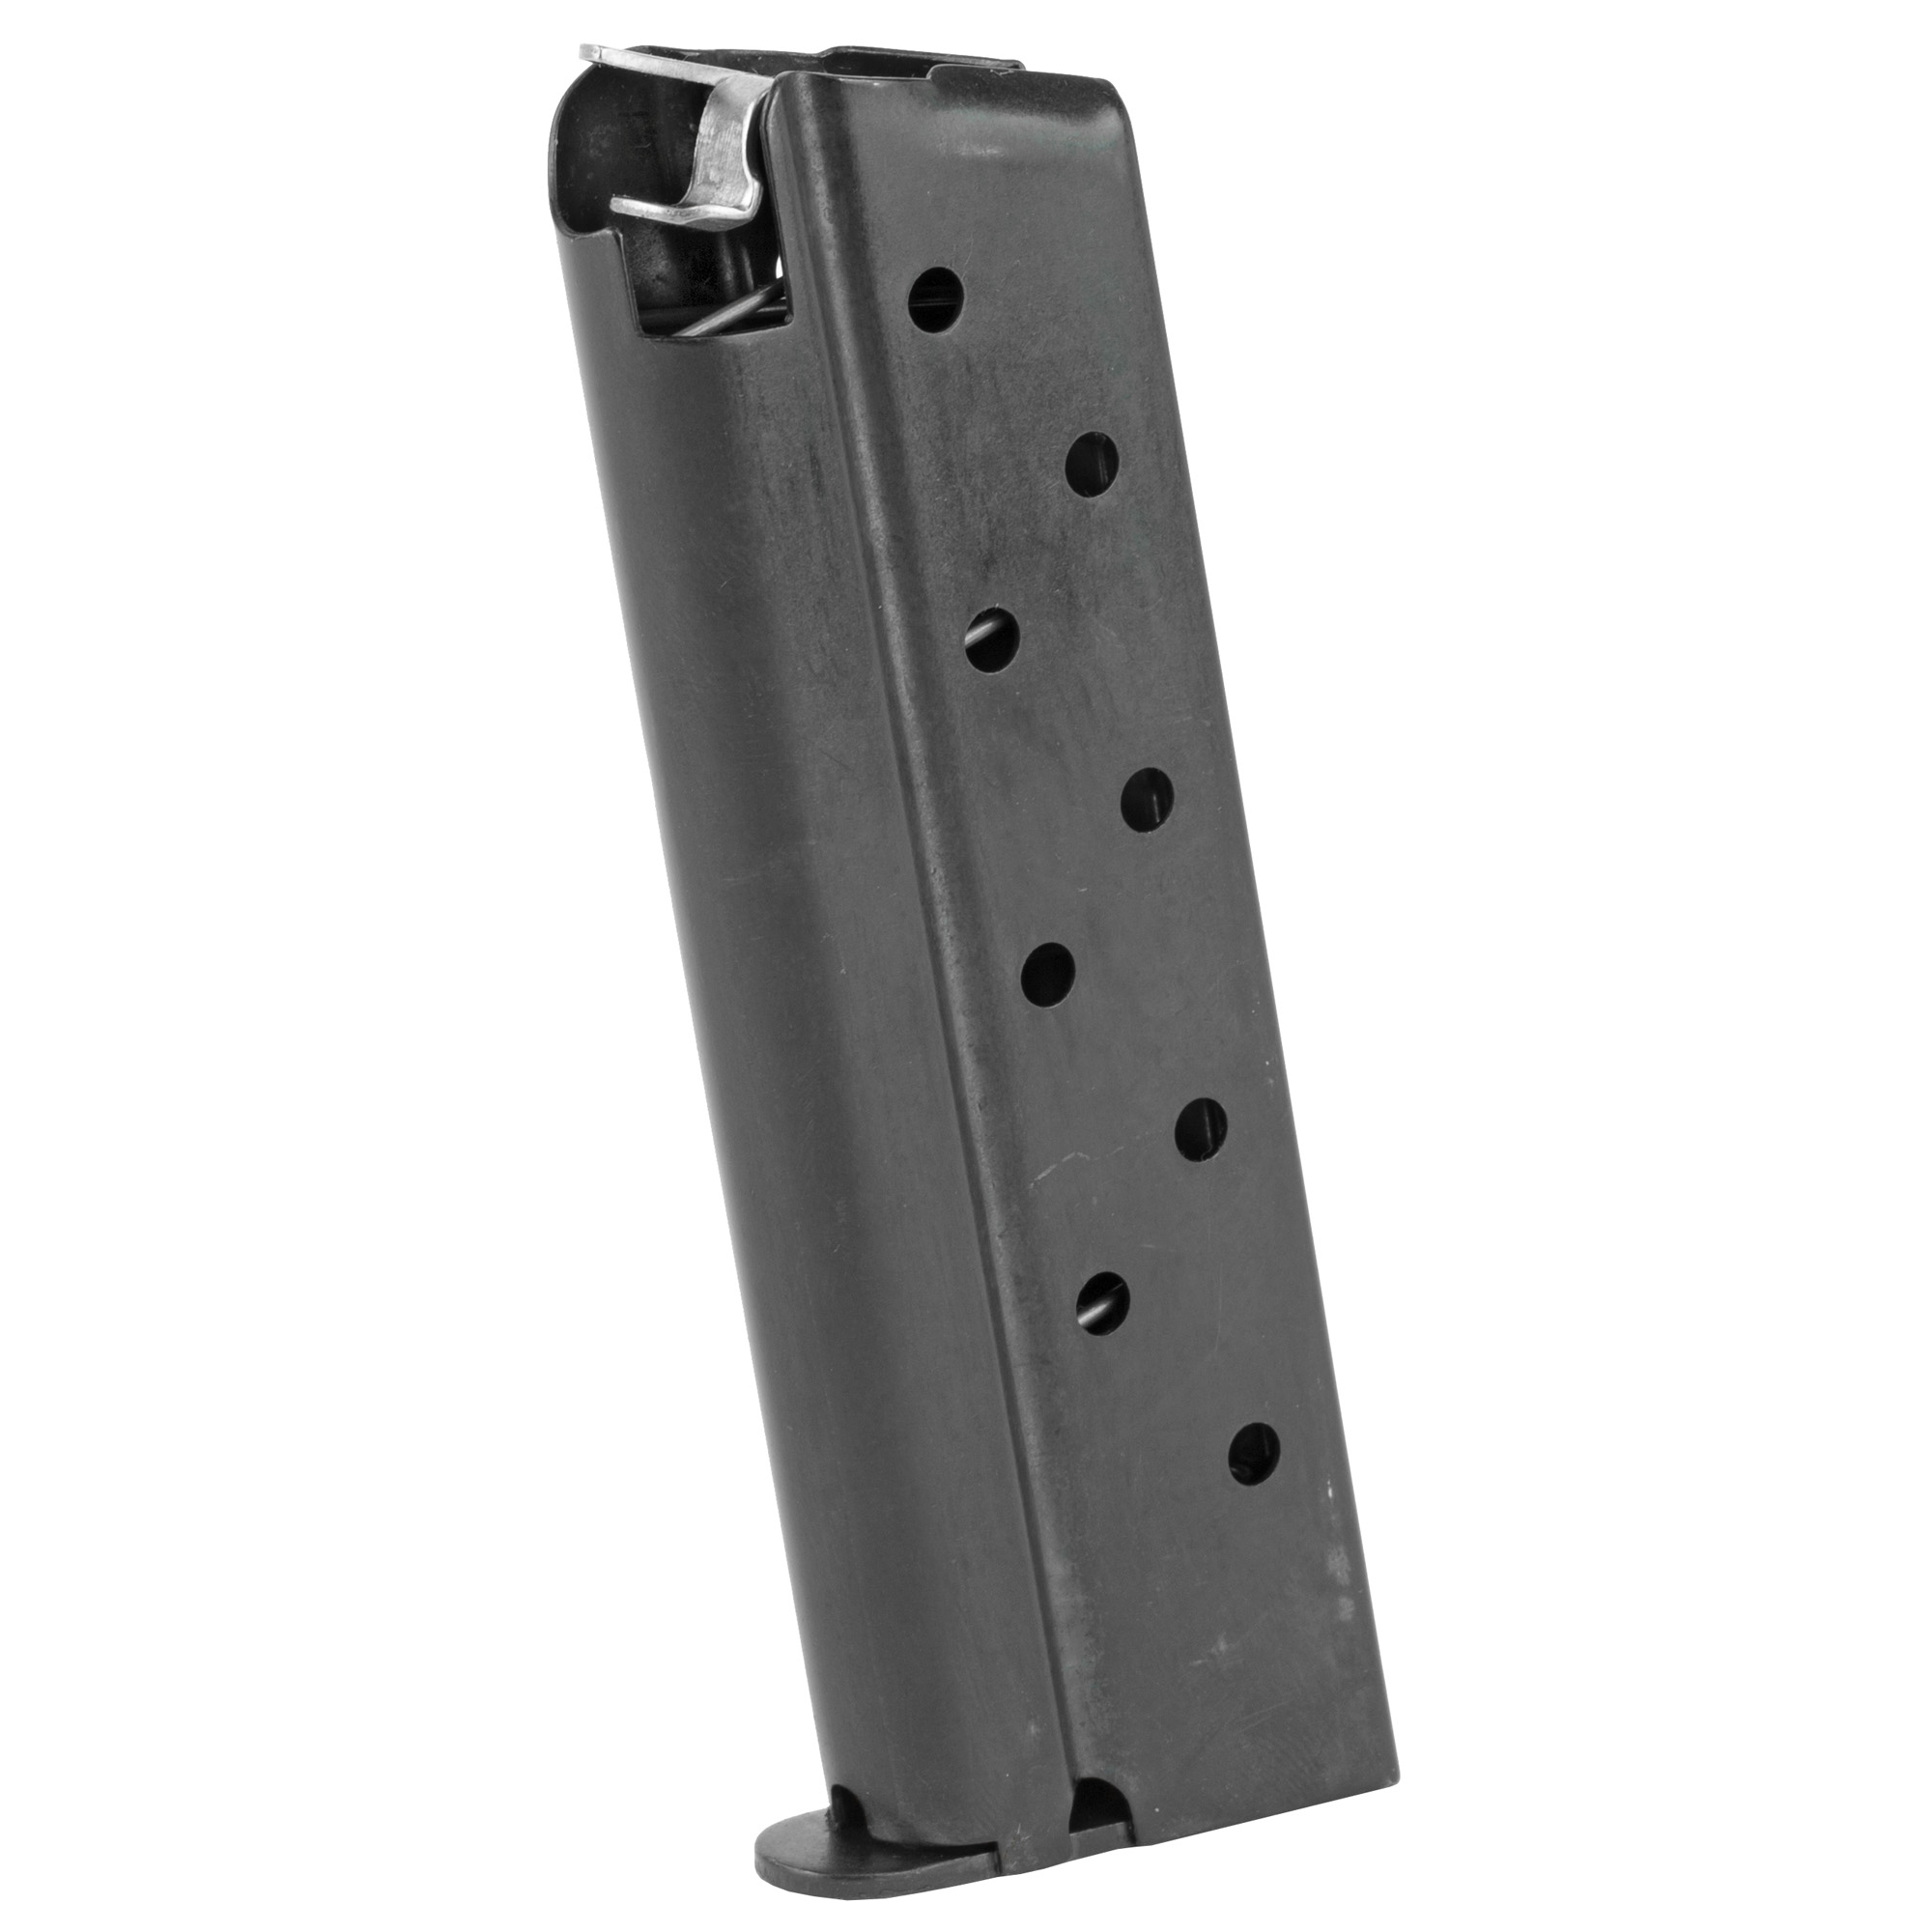 """The Rock Island Armory Compact Sized Magazine is a standard factory replacement magazine. This magazine is for Compact sized 1911 models chambered in 9mm and holds 8 rounds of ammunition. It is made of steel and is made to Armscor/Rock Island Armory specifications and tolerances"""" using the same manufacturing and materials as the original equipment magazines"""" ensuring perfect fit and operation."""